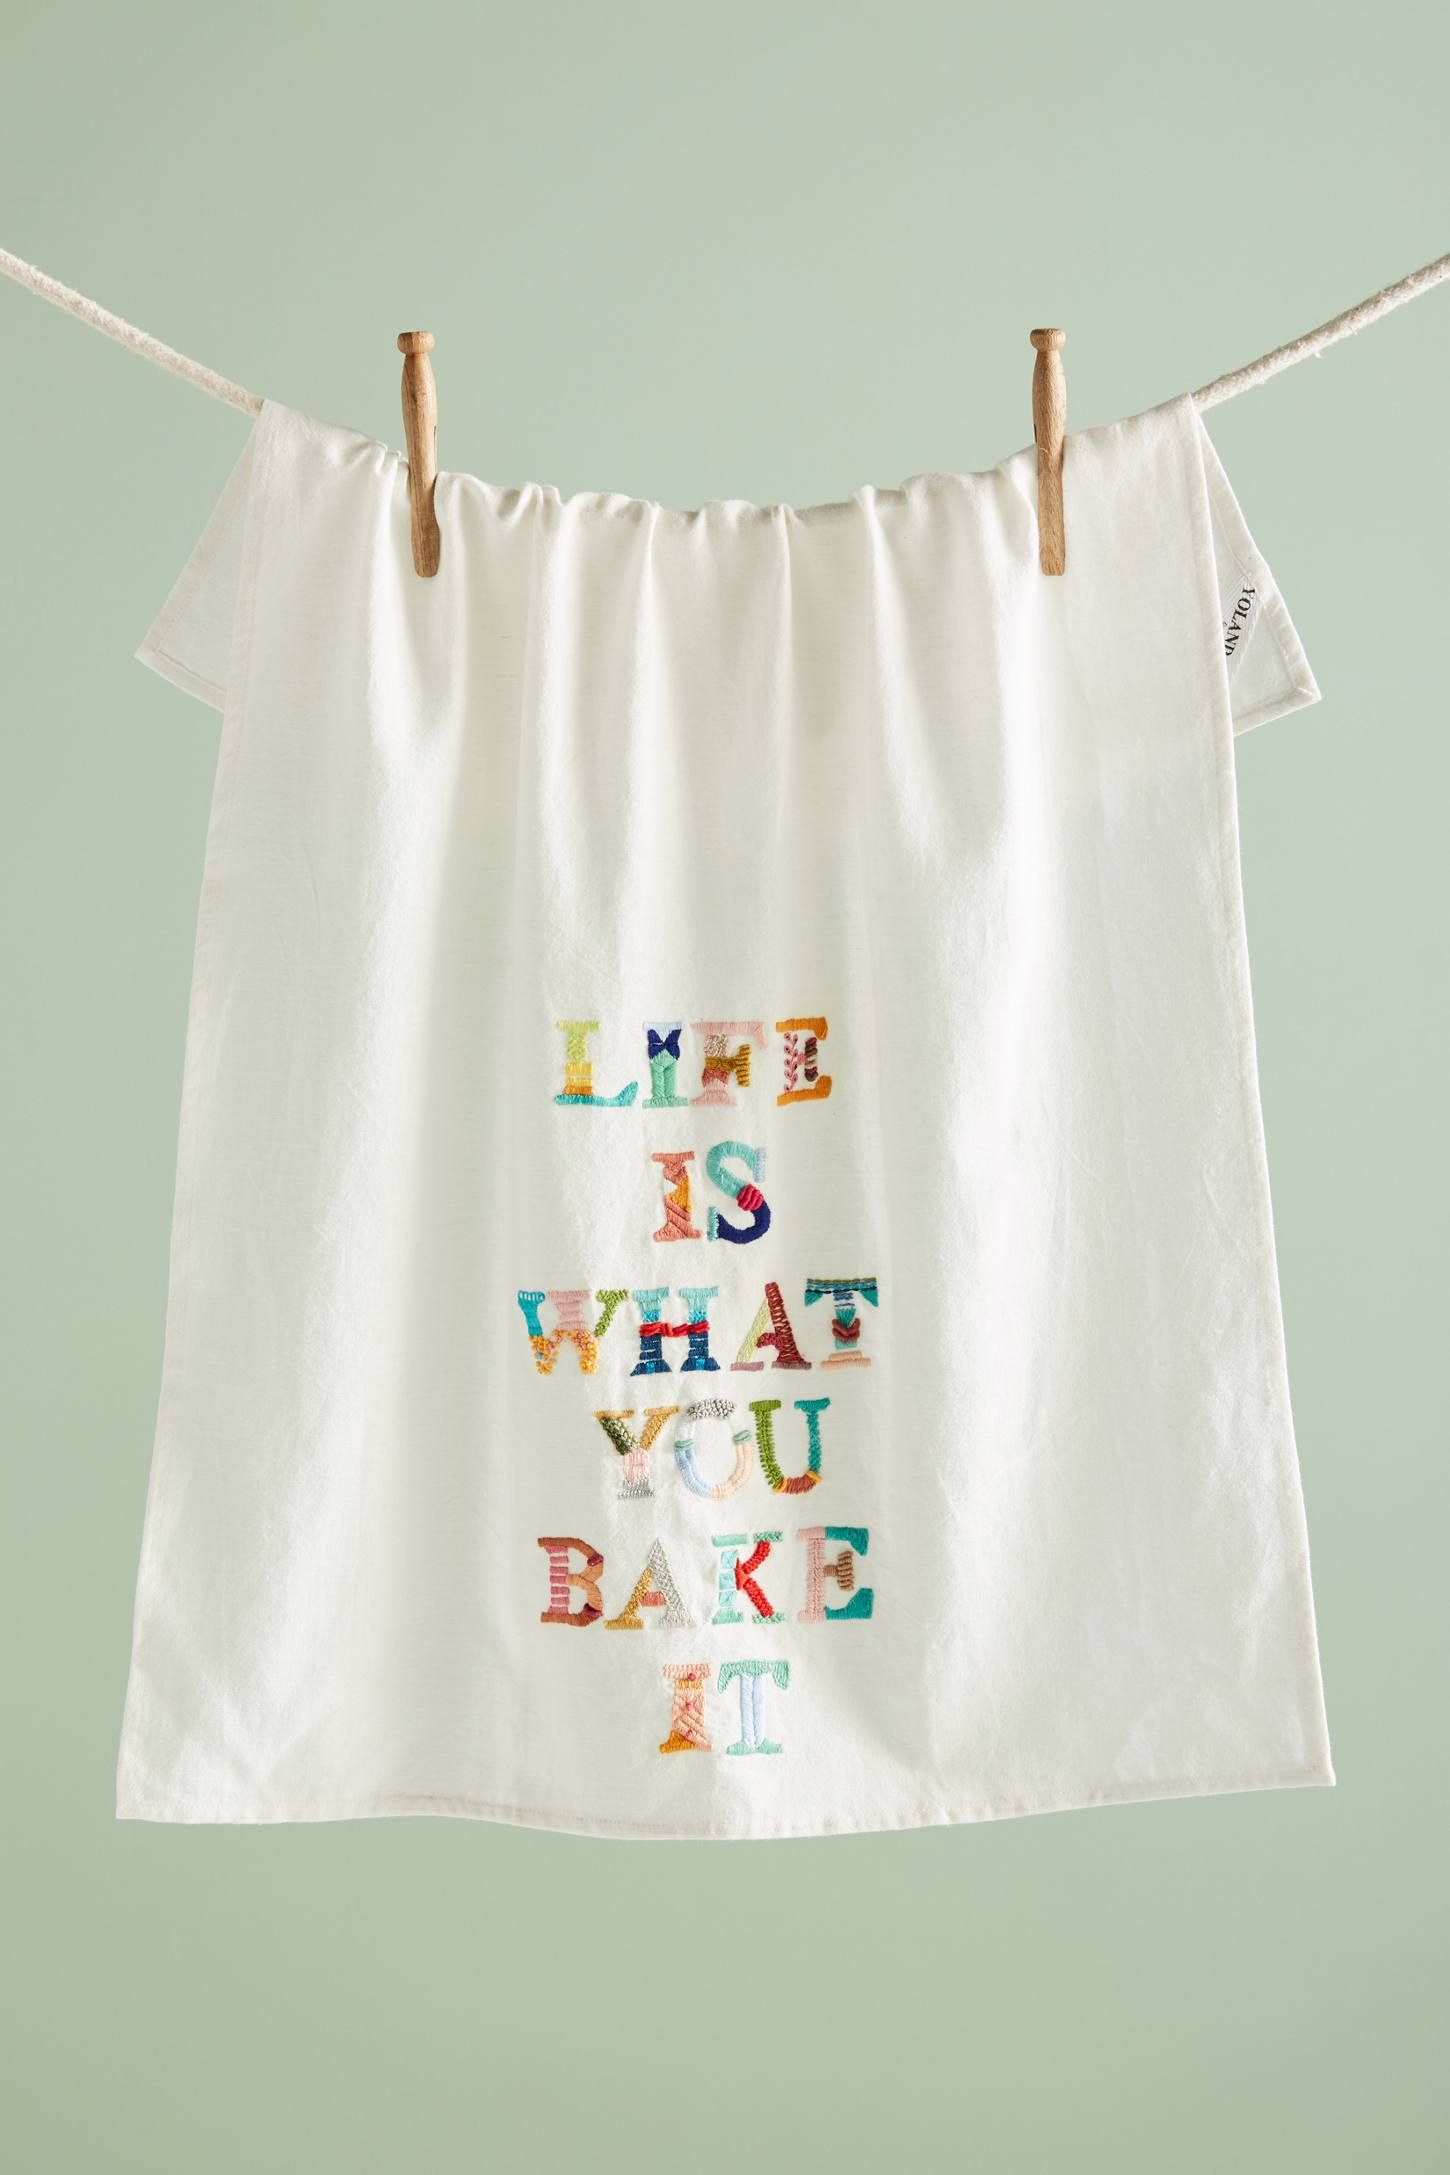 Yolanda Andres Life Is What You Bake It Dish Towel Dish Towels Tea Towels Anthropologie Home